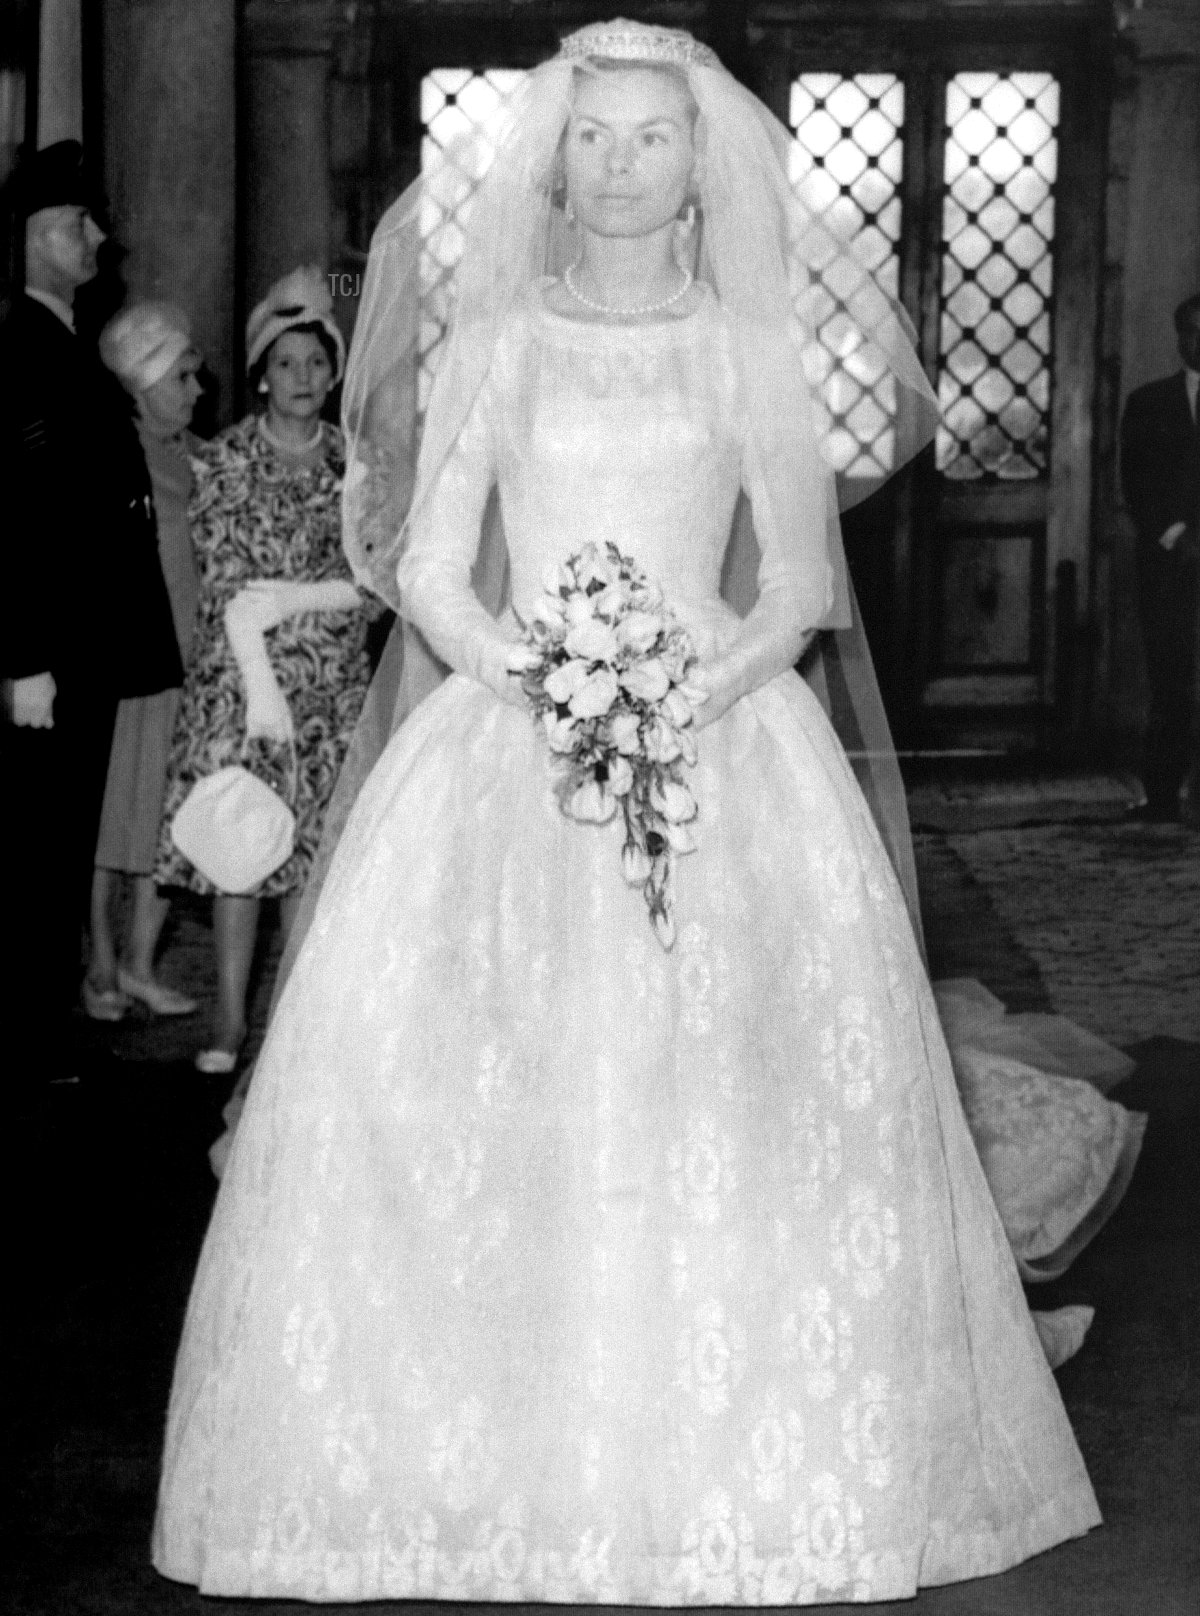 Holding her bouquet of roses, Miss Katharine Worsley leaves her Hovingham Hall home for York Minster where she will become the Duchess of Kent on her marriage to Duke of Kent